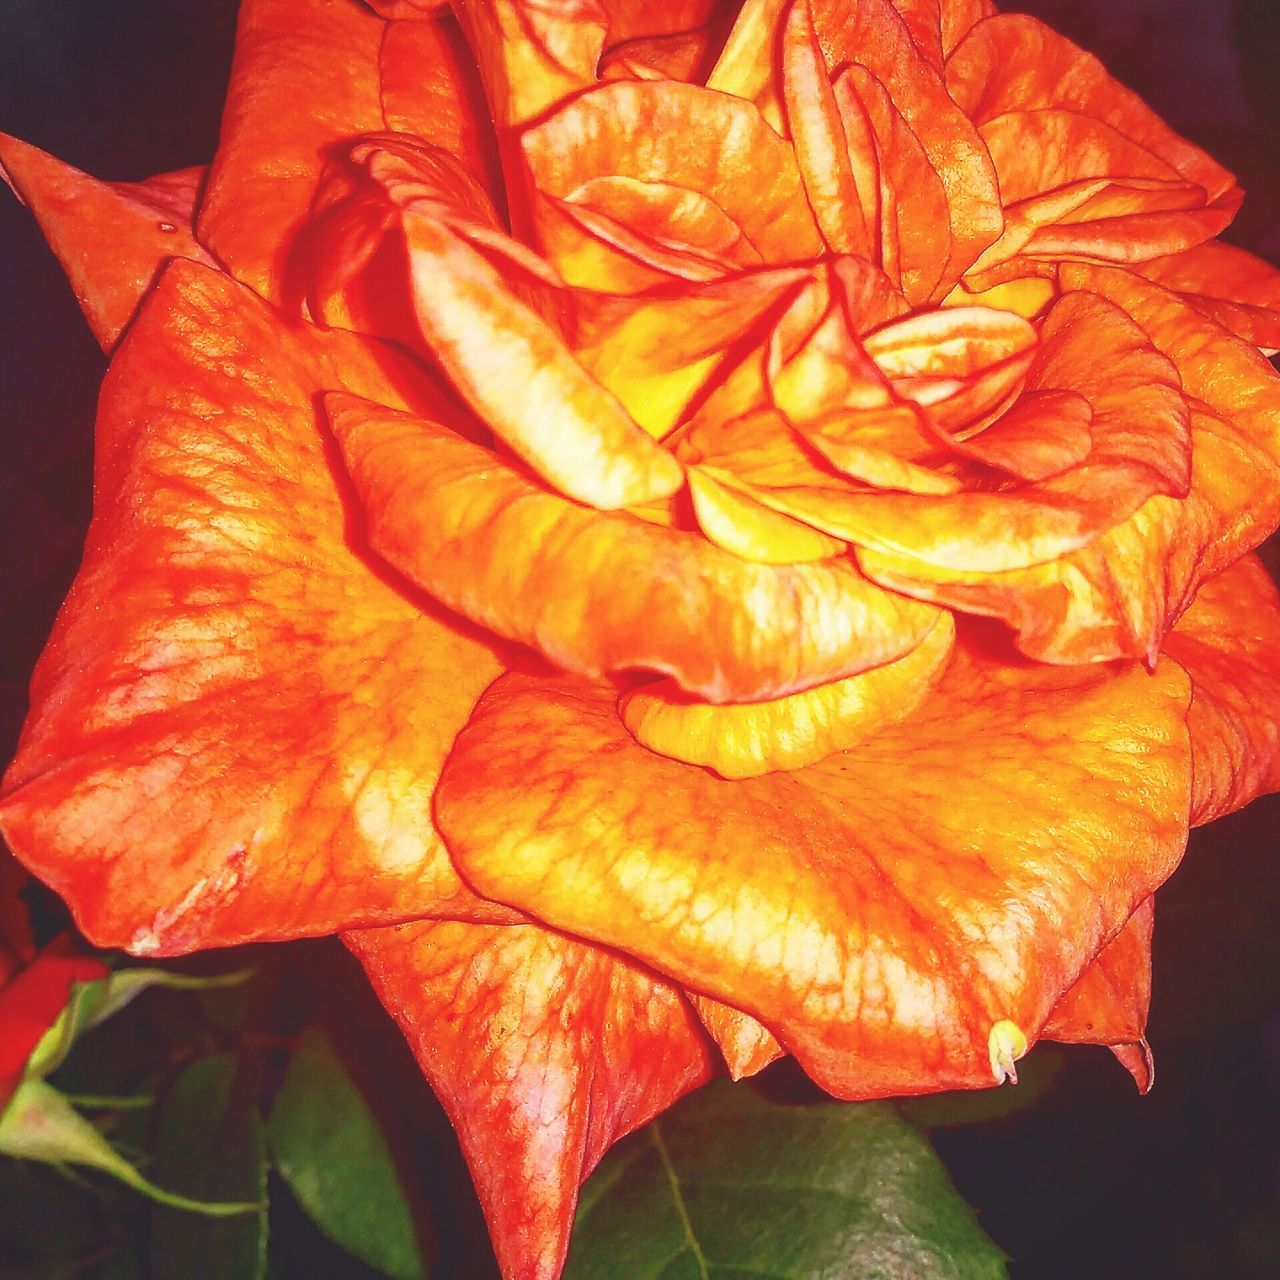 flower, petal, flower head, beauty in nature, nature, fragility, orange color, freshness, rose - flower, close-up, growth, plant, outdoors, no people, leaf, blooming, day